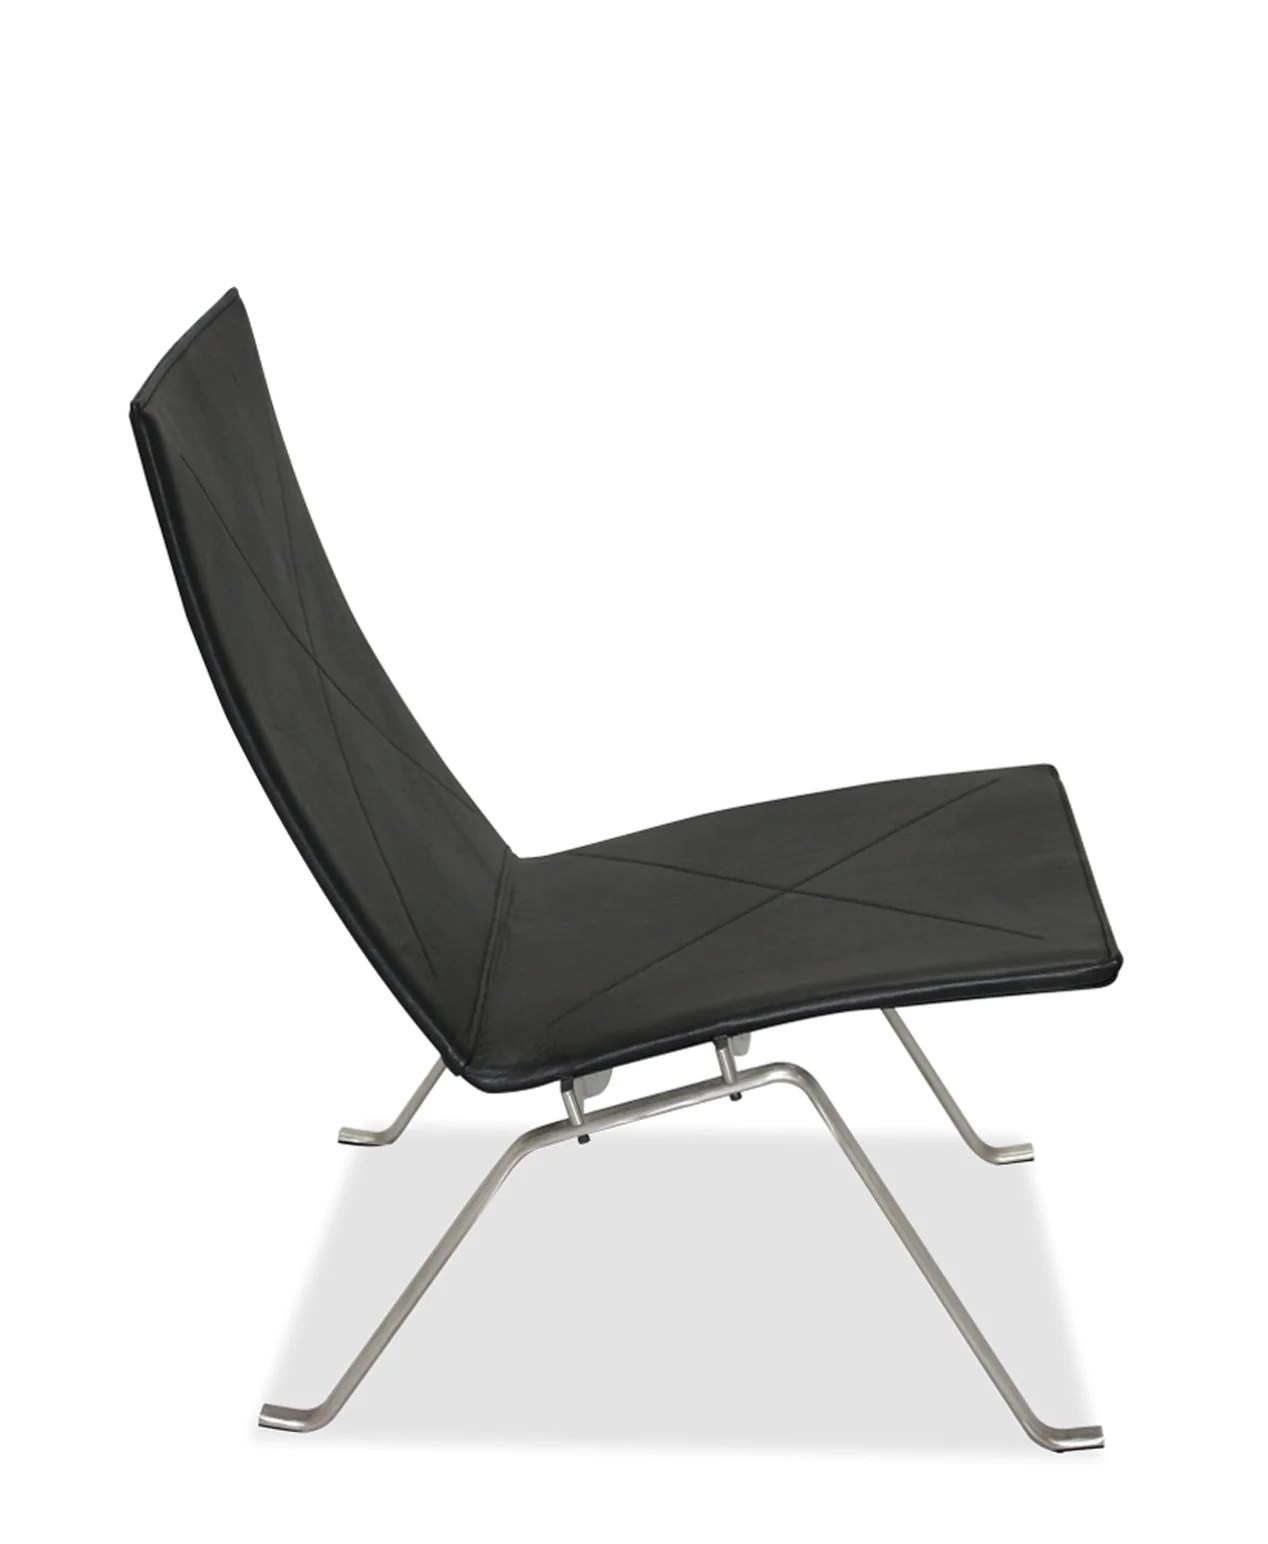 Pk22 Chair Pk22 Chair Classic Leather